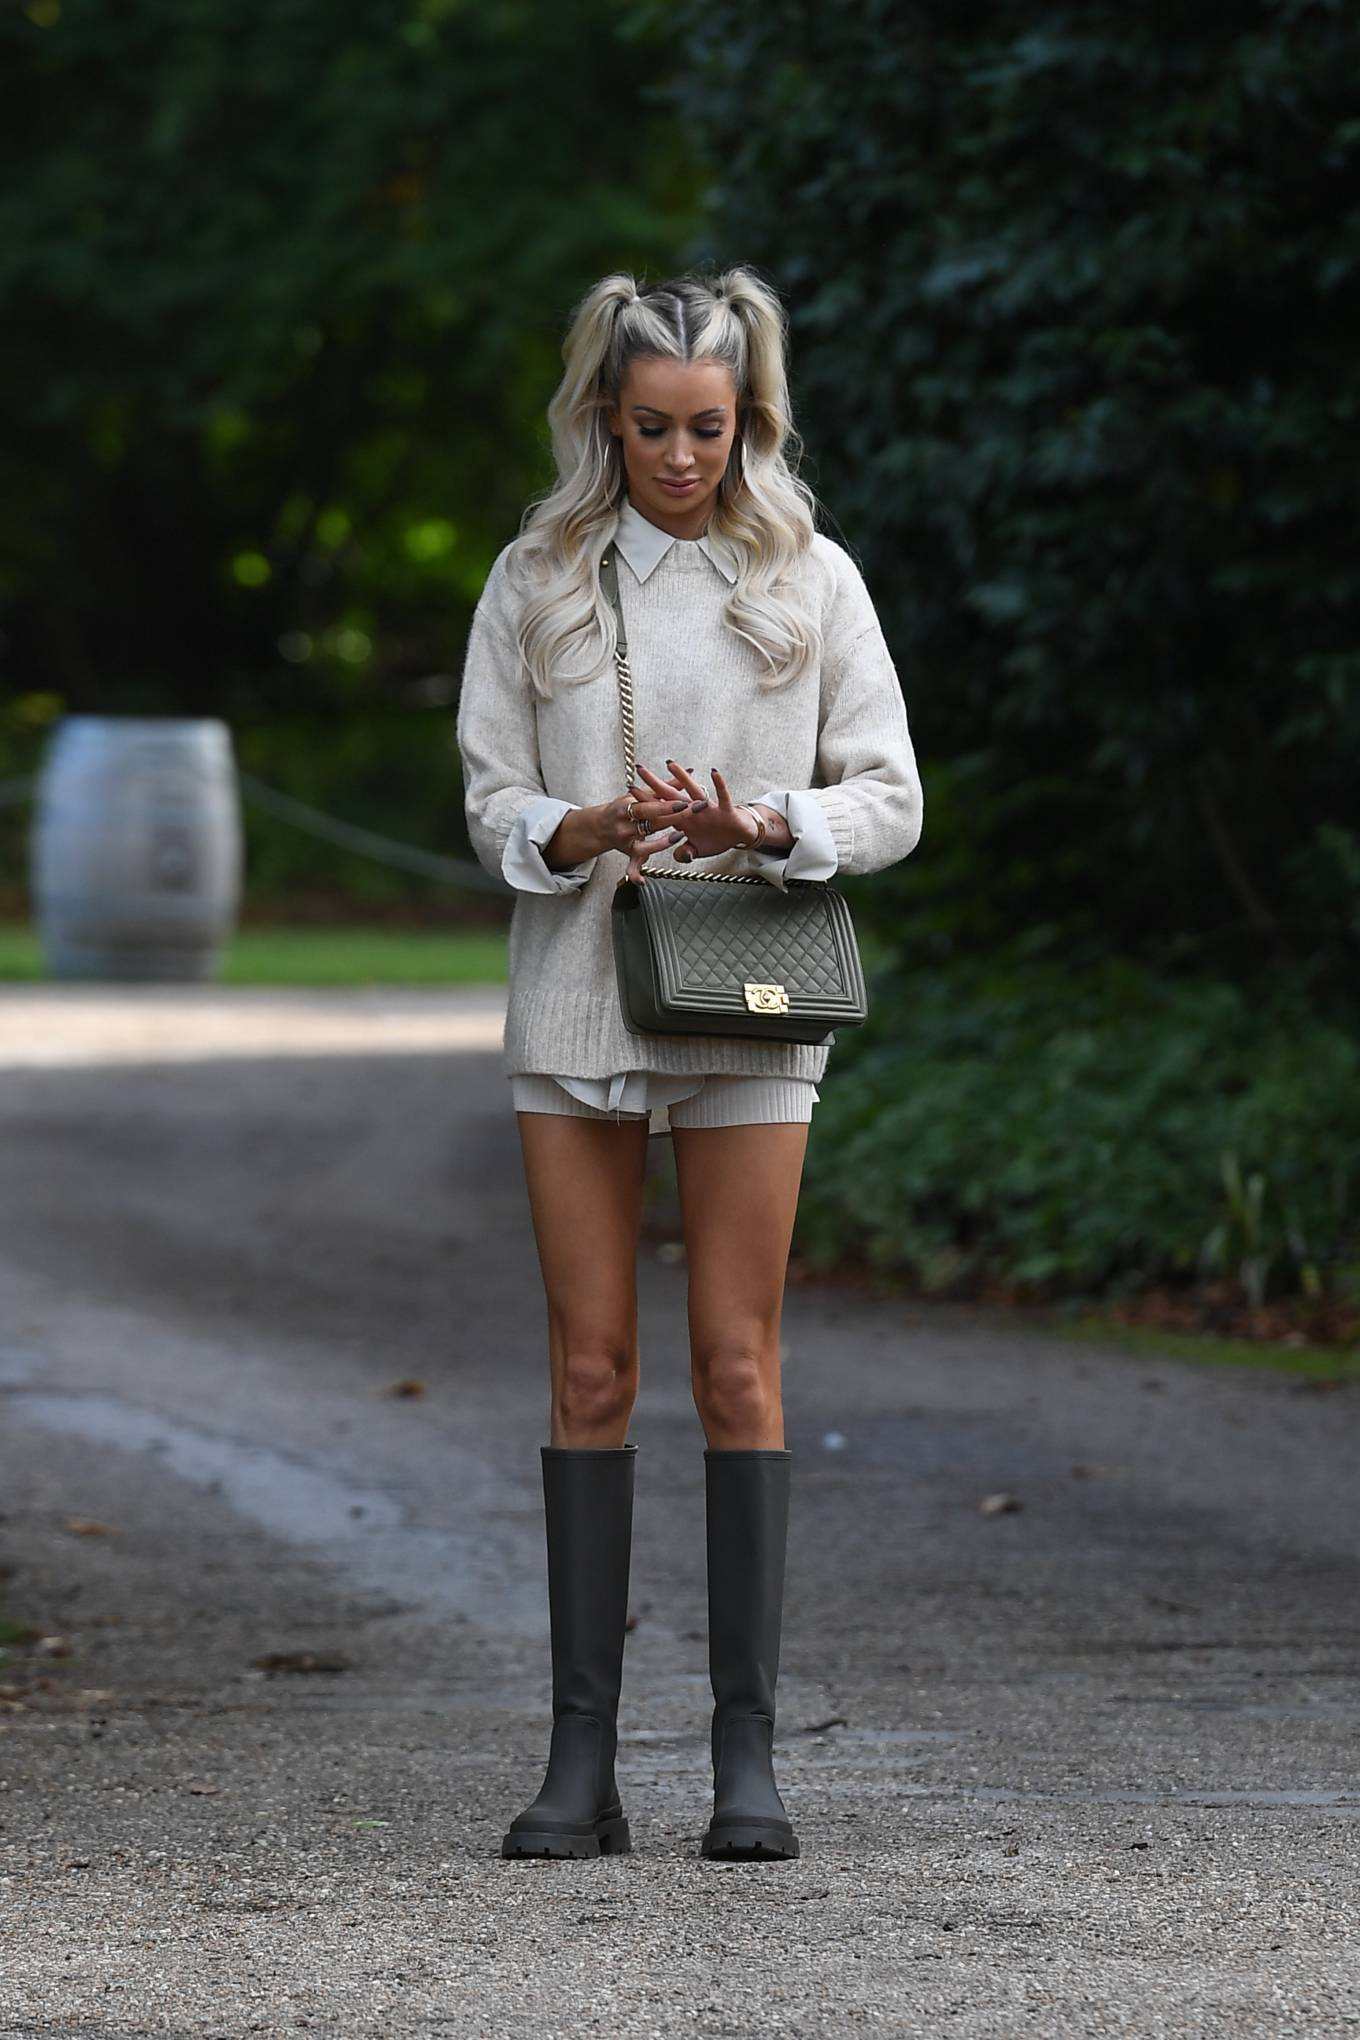 Olivia Attwood 2020 : Olivia Attwood – The Only Way is Essex TV Show filming in Essex-03